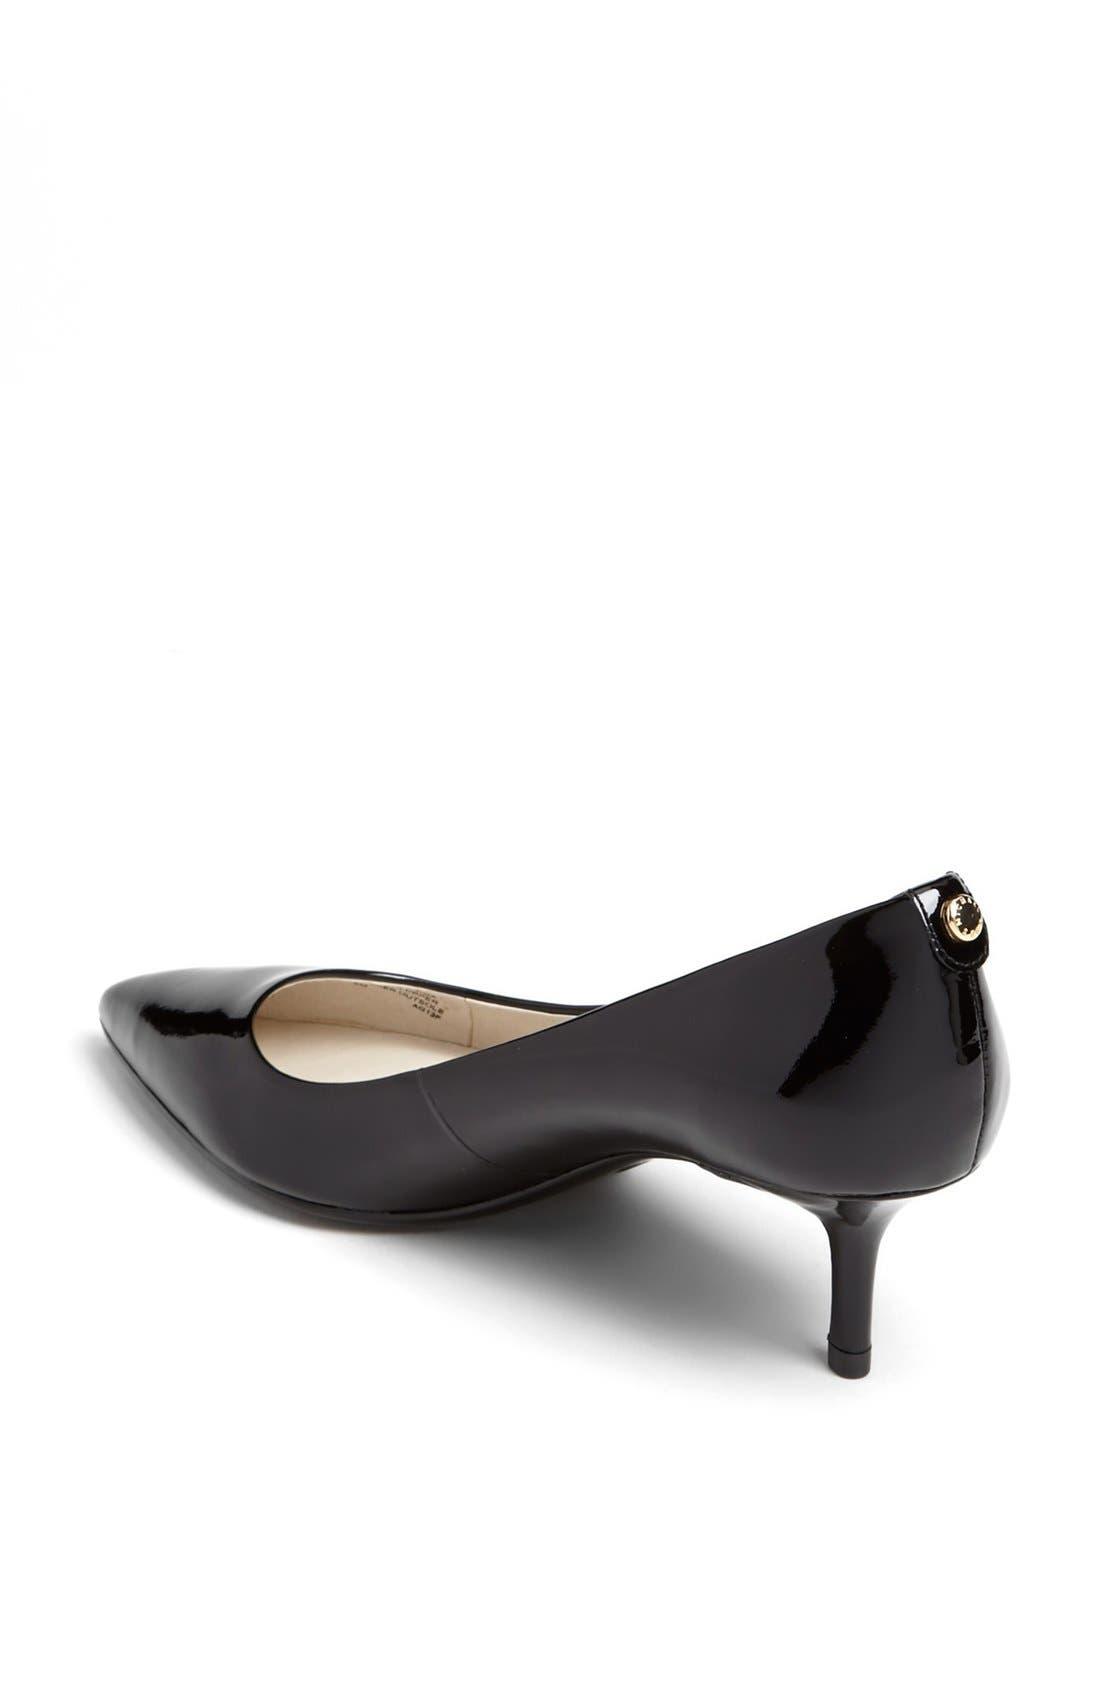 Kitten Heel Pump,                             Alternate thumbnail 4, color,                             BLACK